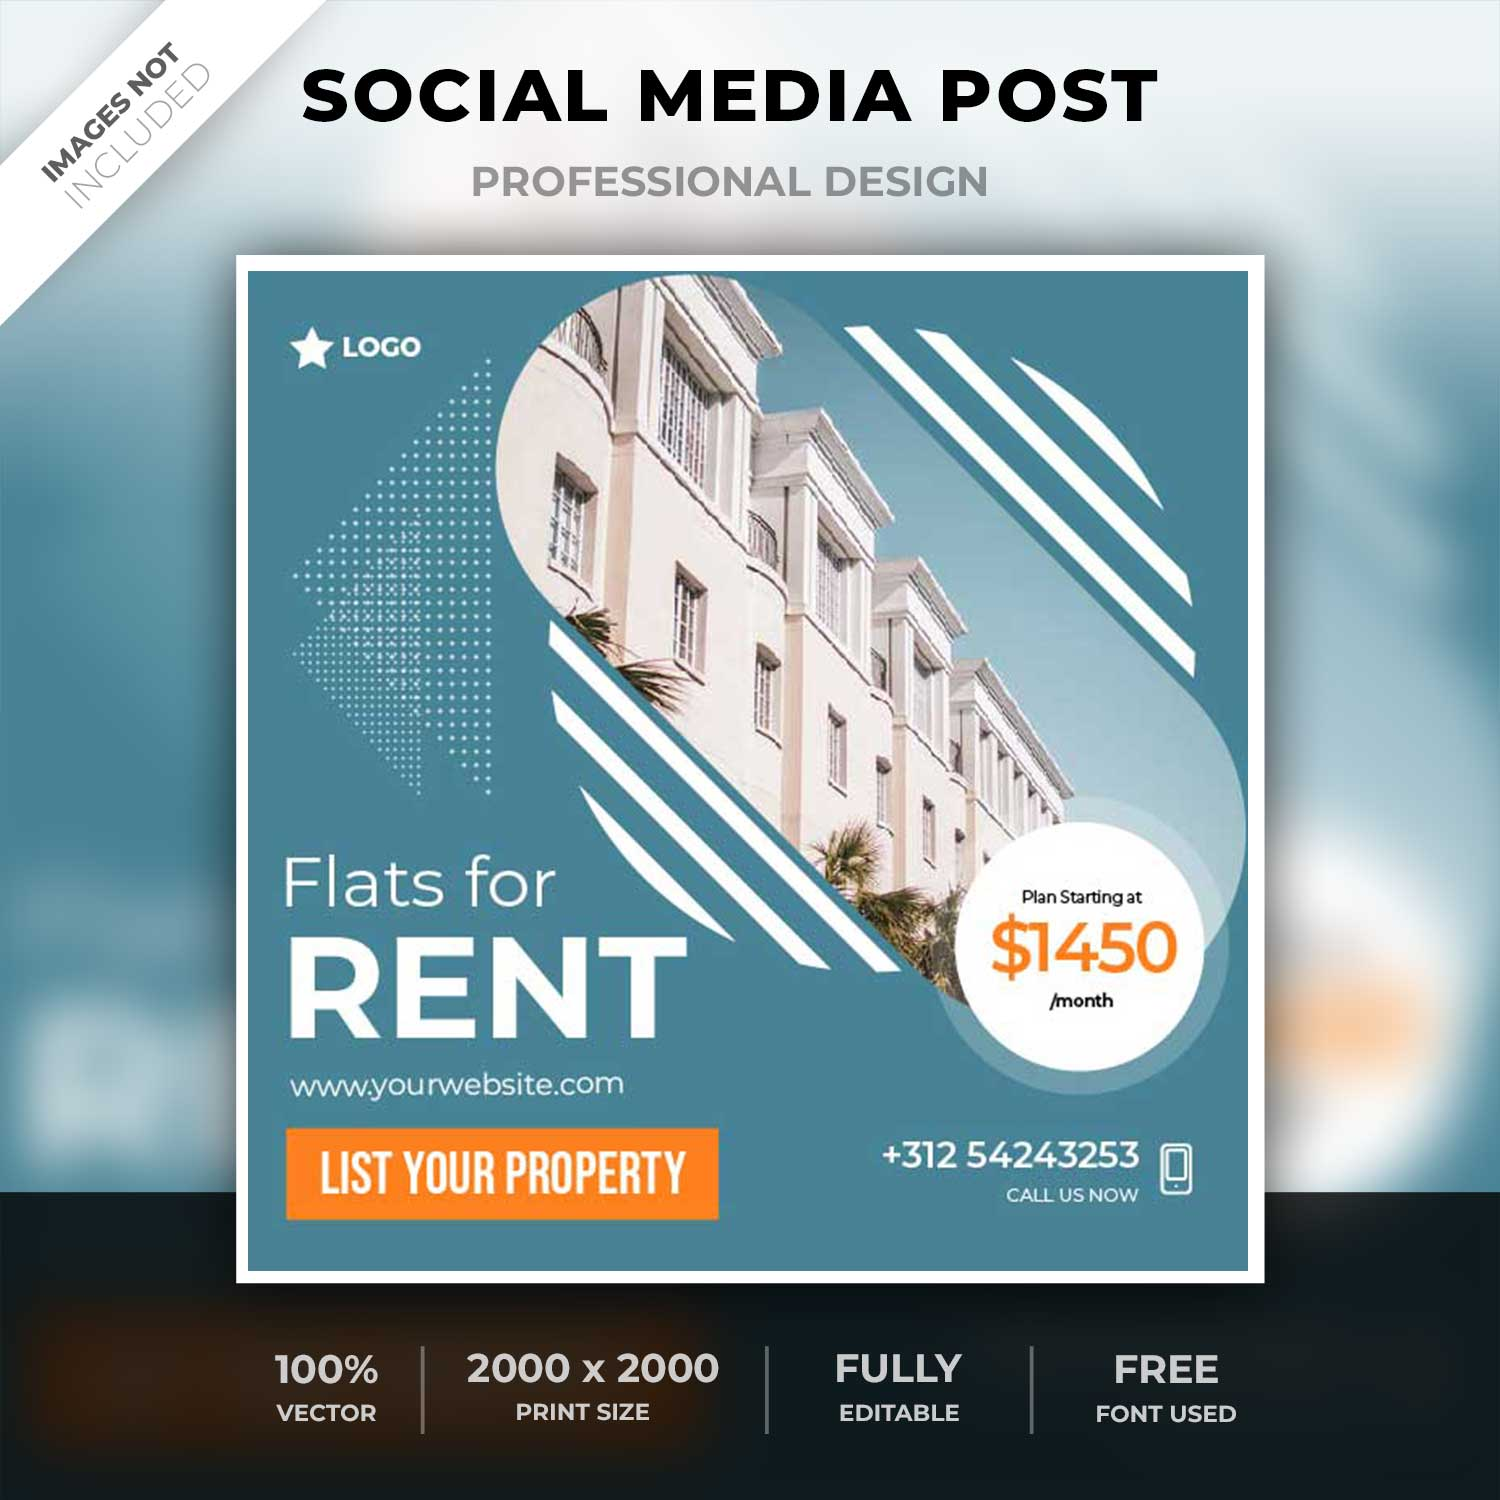 Property for rent post template